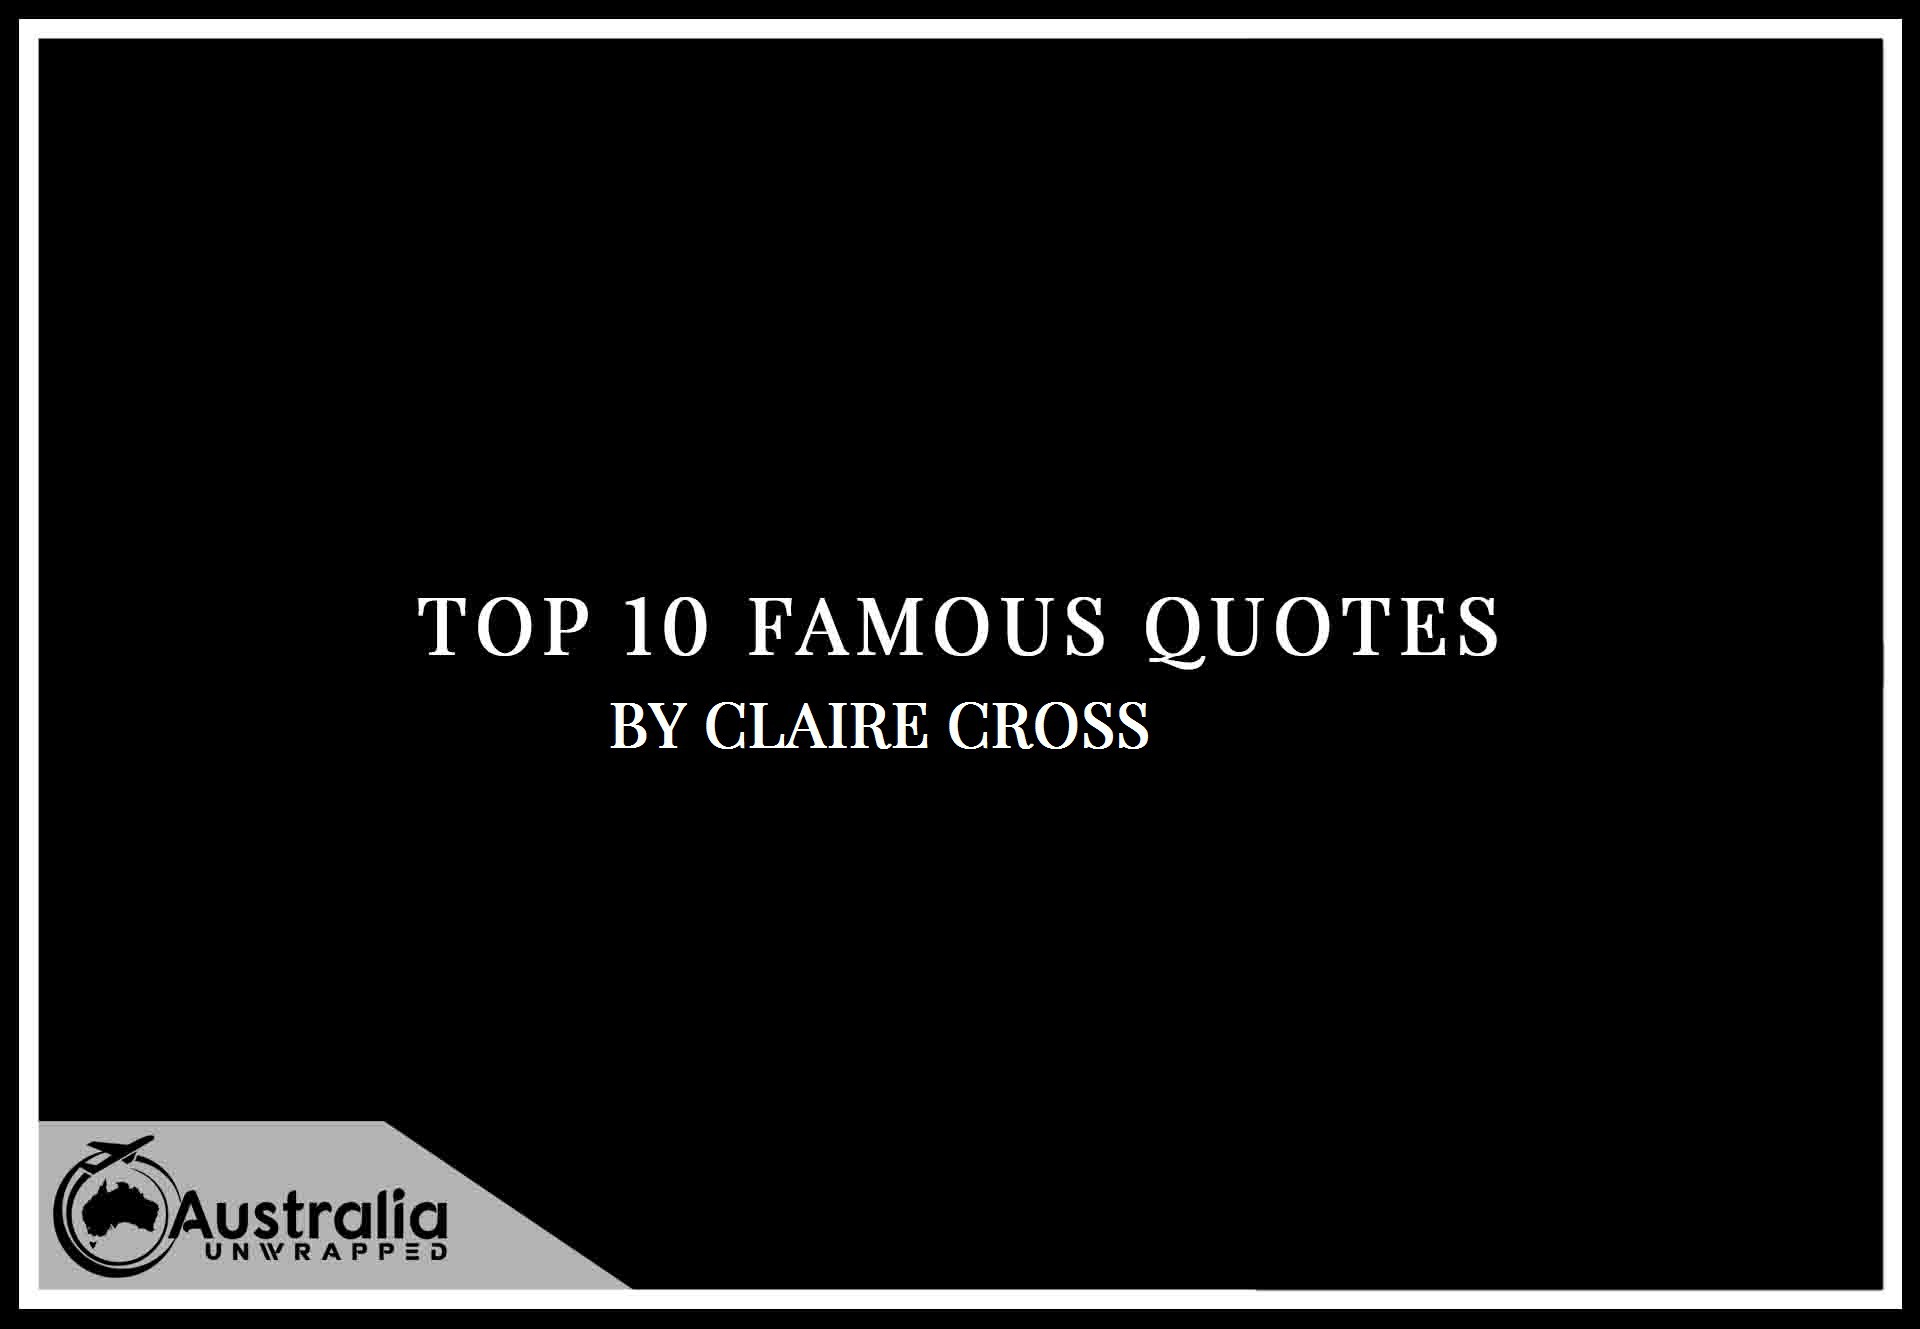 Claire Cross's Top 10 Popular and Famous Quotes